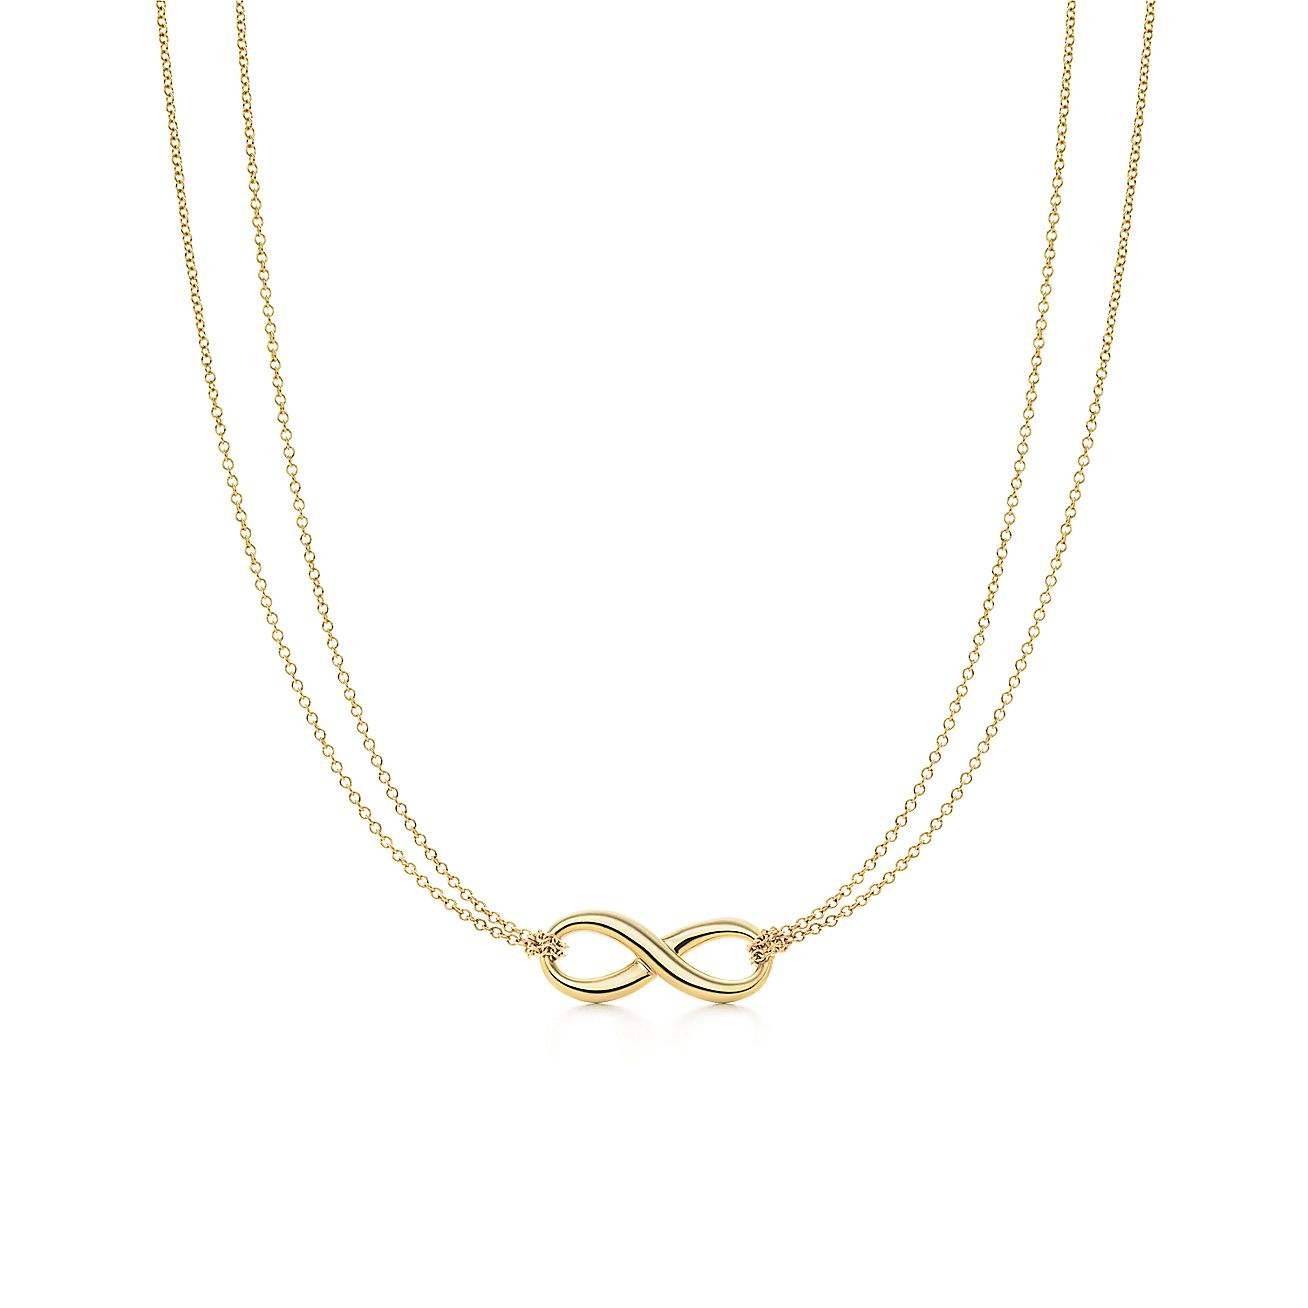 Tiffany Infinity Pendant In 18k Gold Tiffany Co